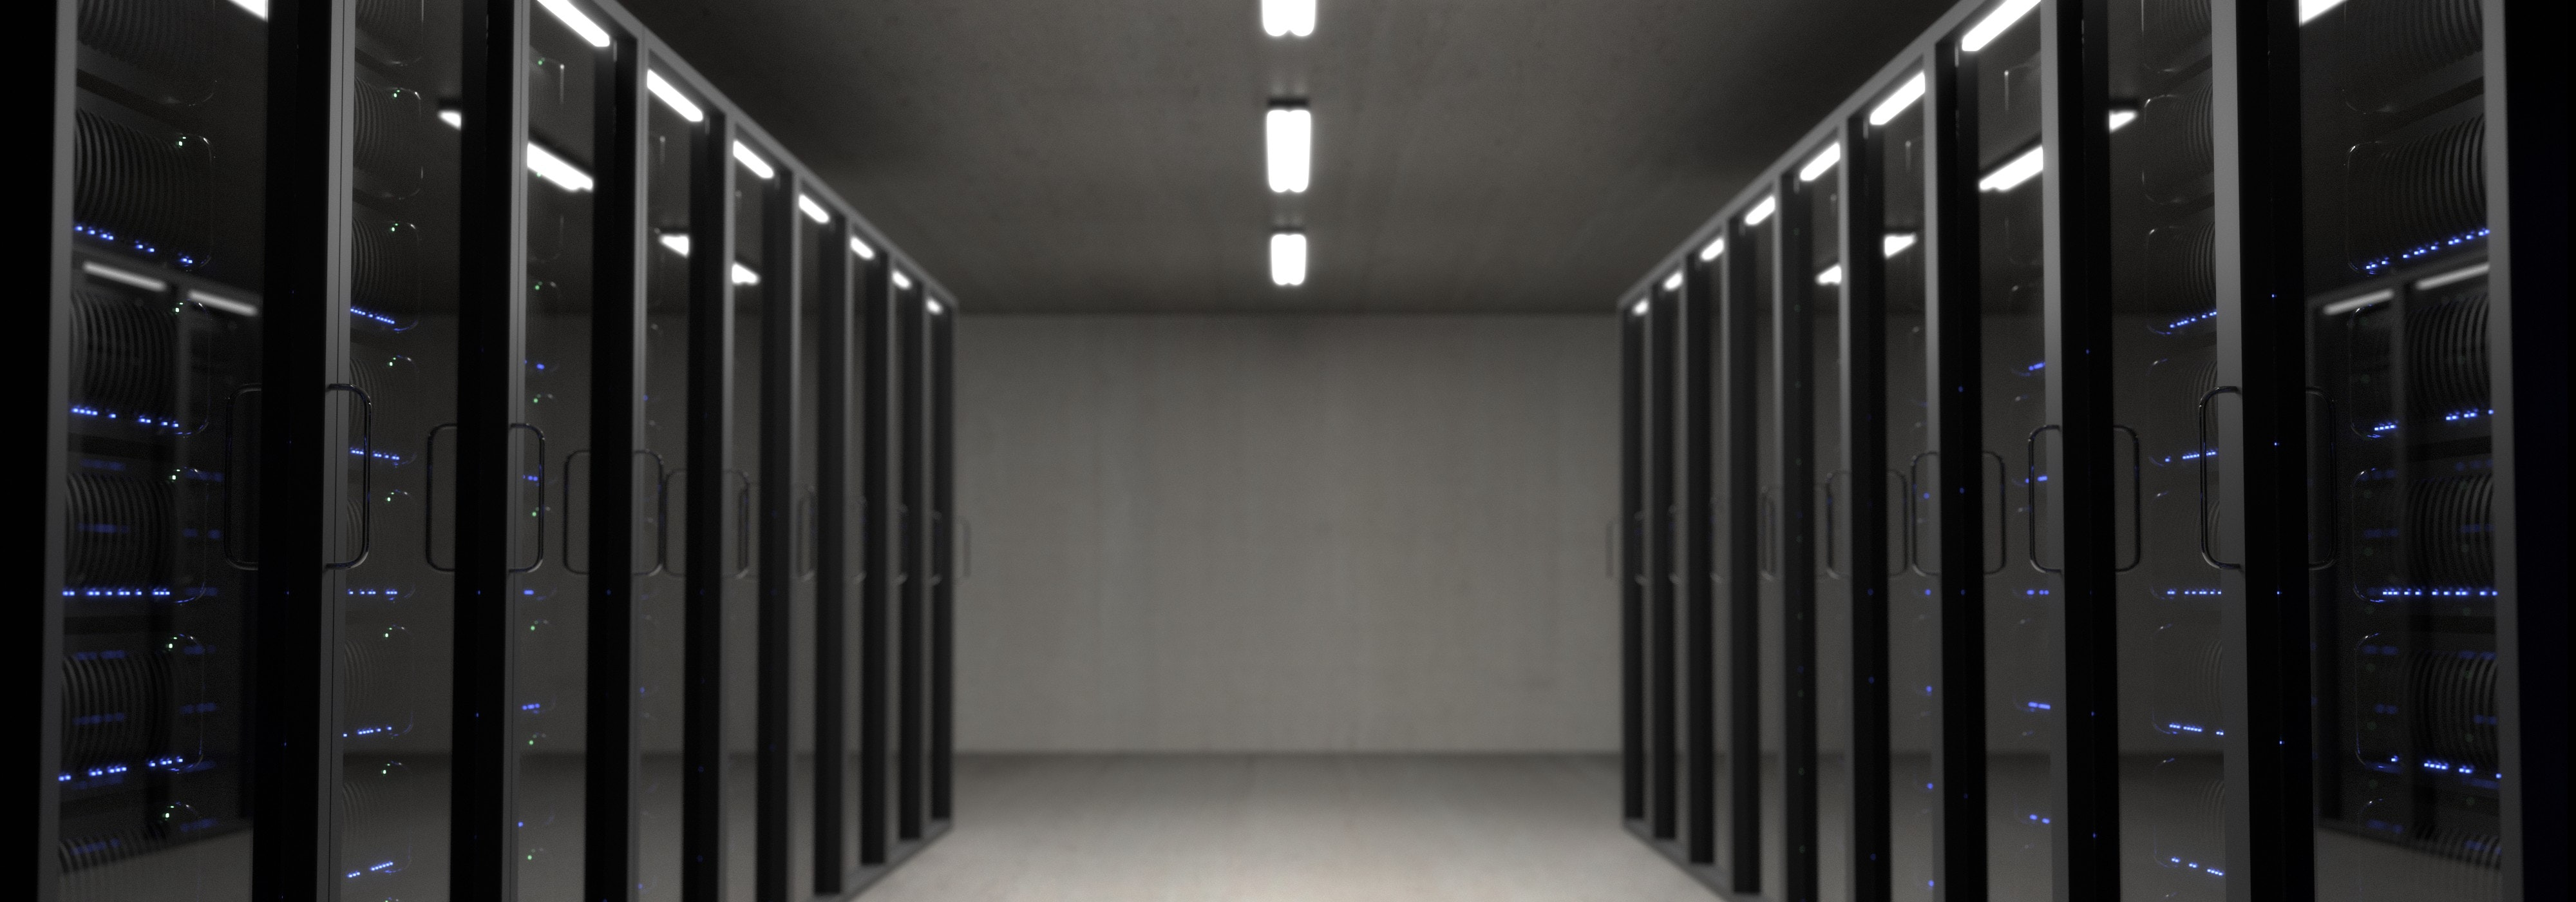 Data centers are the facility in a building that stores computer and related components to store, organize, process and exchange large amounts of data.